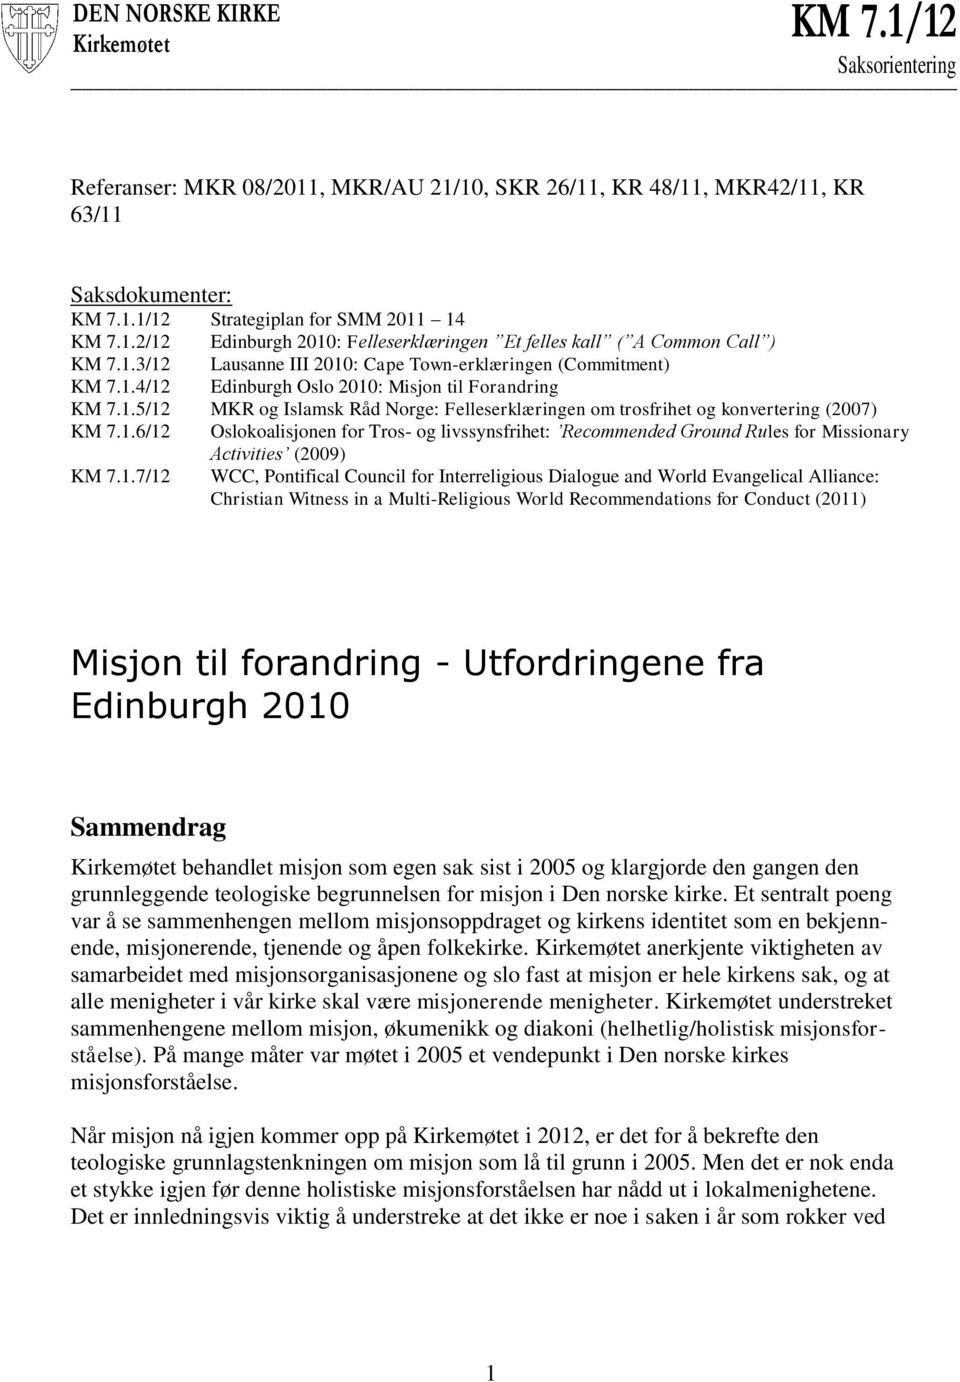 1.6/12 Oslokoalisjonen for Tros- og livssynsfrihet: Recommended Ground Rules for Missionary Activities (2009) KM 7.1.7/12 WCC, Pontifical Council for Interreligious Dialogue and World Evangelical